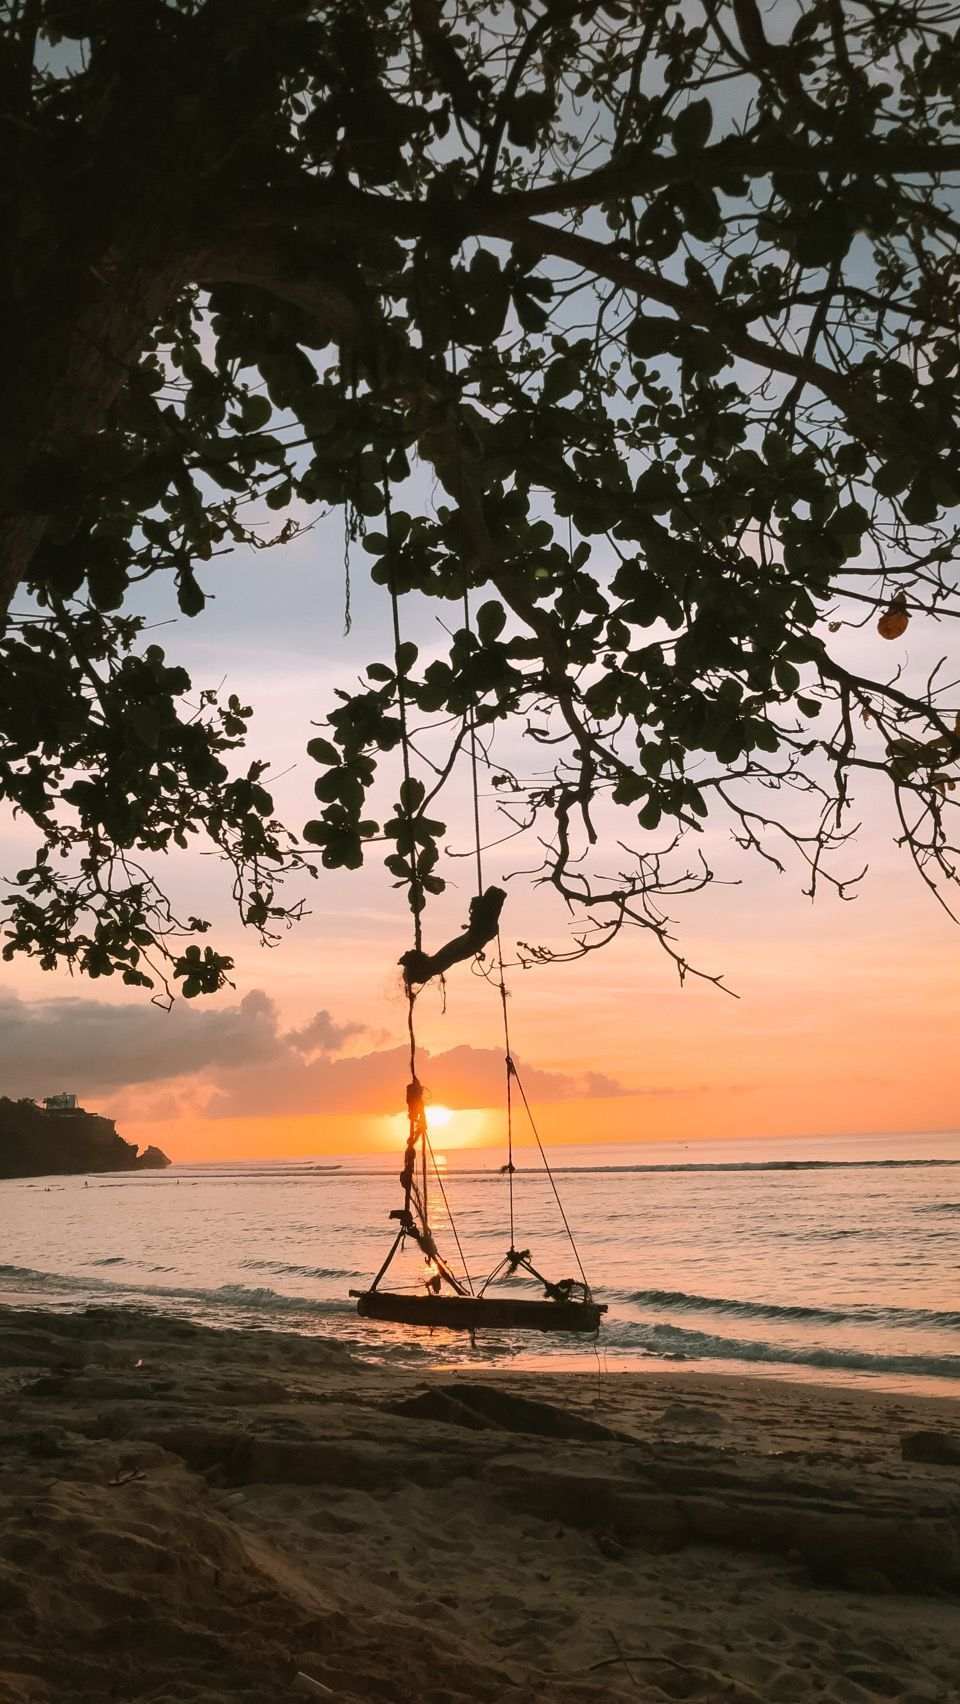 An incredible sunset at Padang Beach in Bali! See more by @chriischristina on Steller. #Beaches #Bali #Indonesia #BeautifulBeaches #BaliTravel #Calming